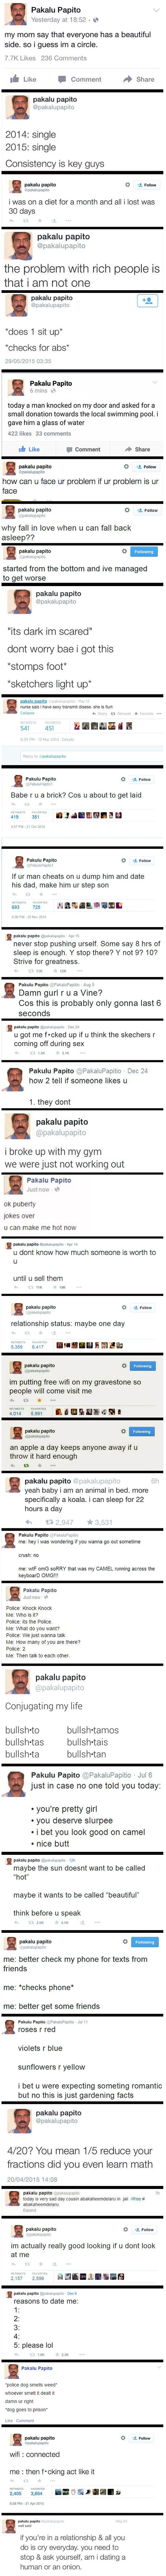 Pakalu Papito is the funniest guy on Twitter.